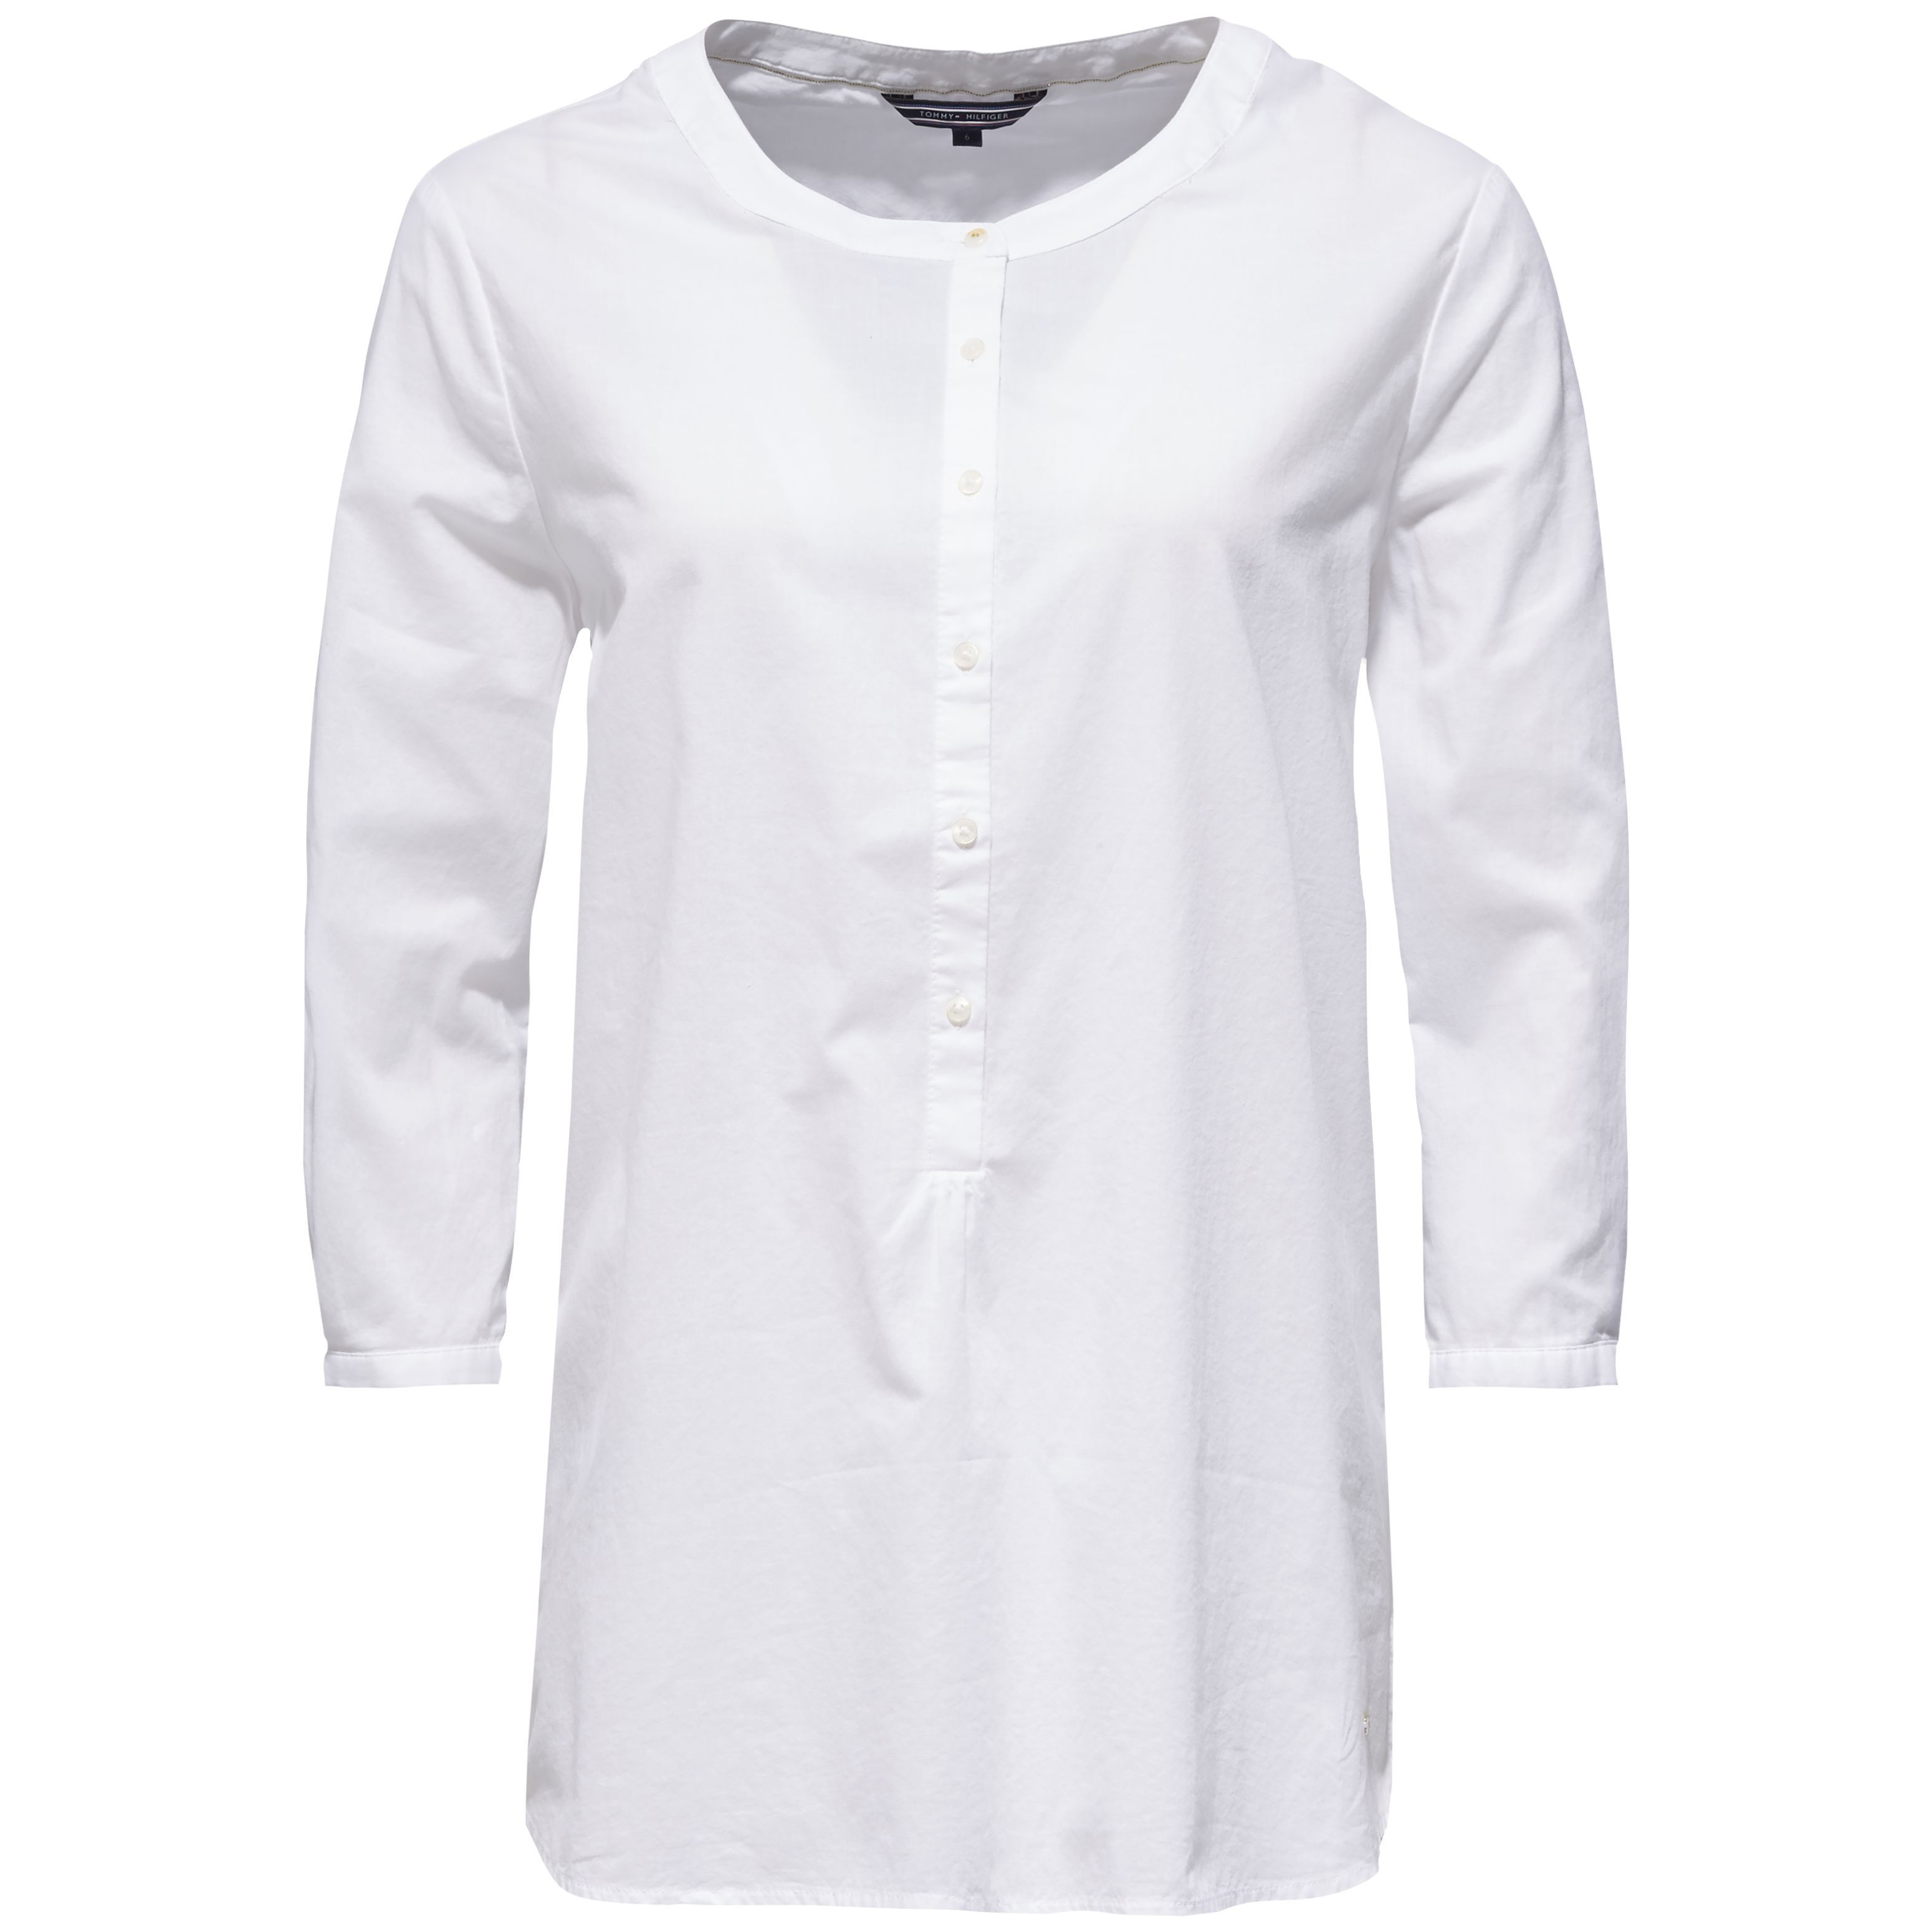 Tommy Hilfiger Annalise Blouse, White